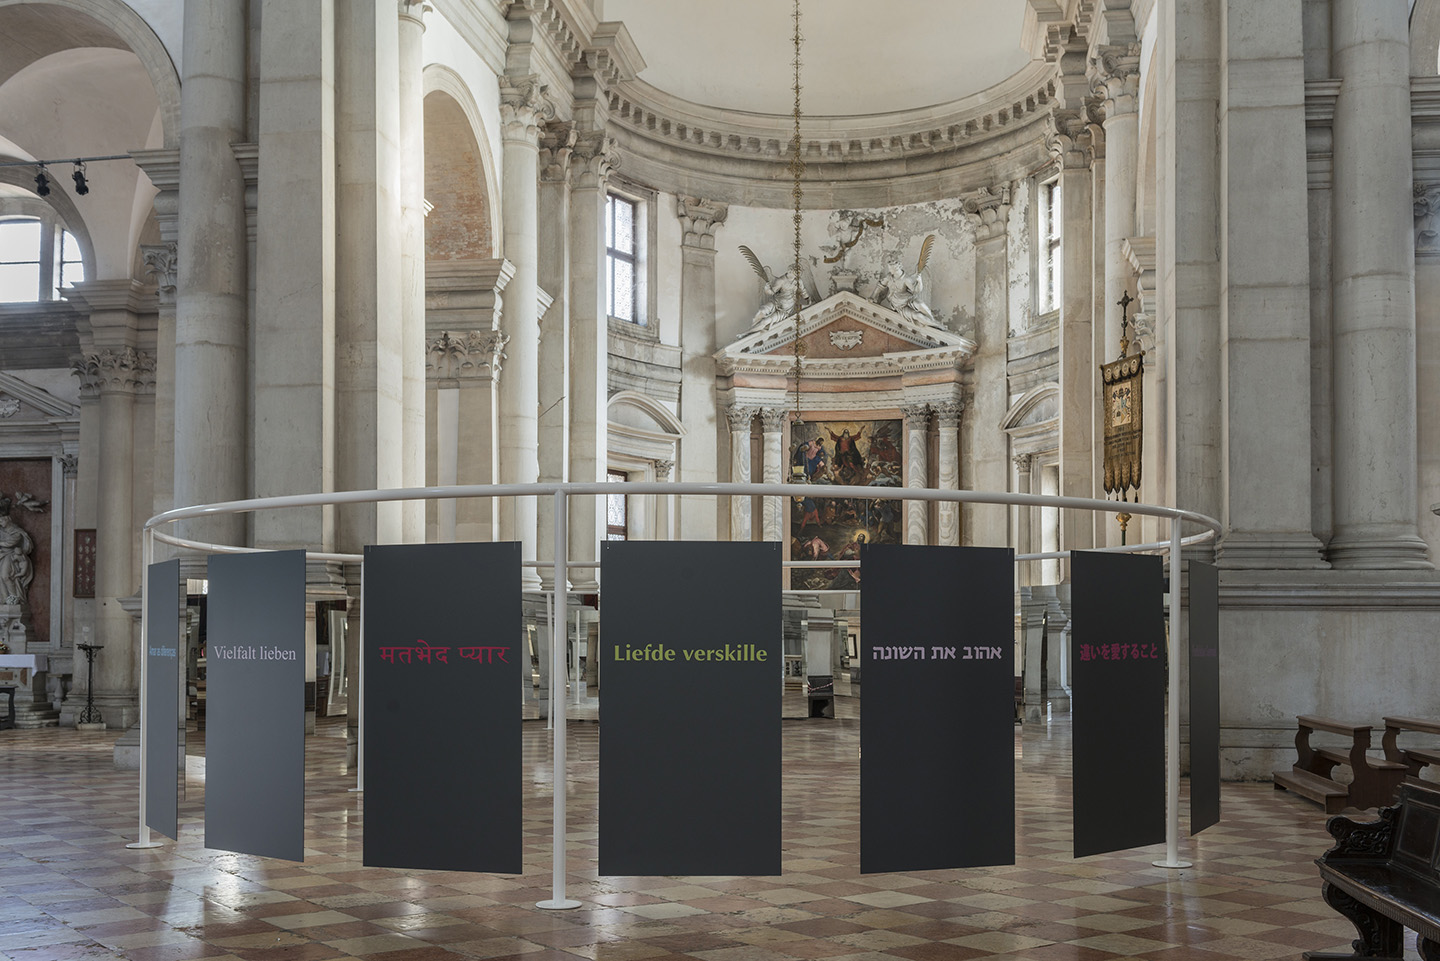 Michelangelo pistoletto one and one makes three at - Michelangelo pistoletto specchi ...